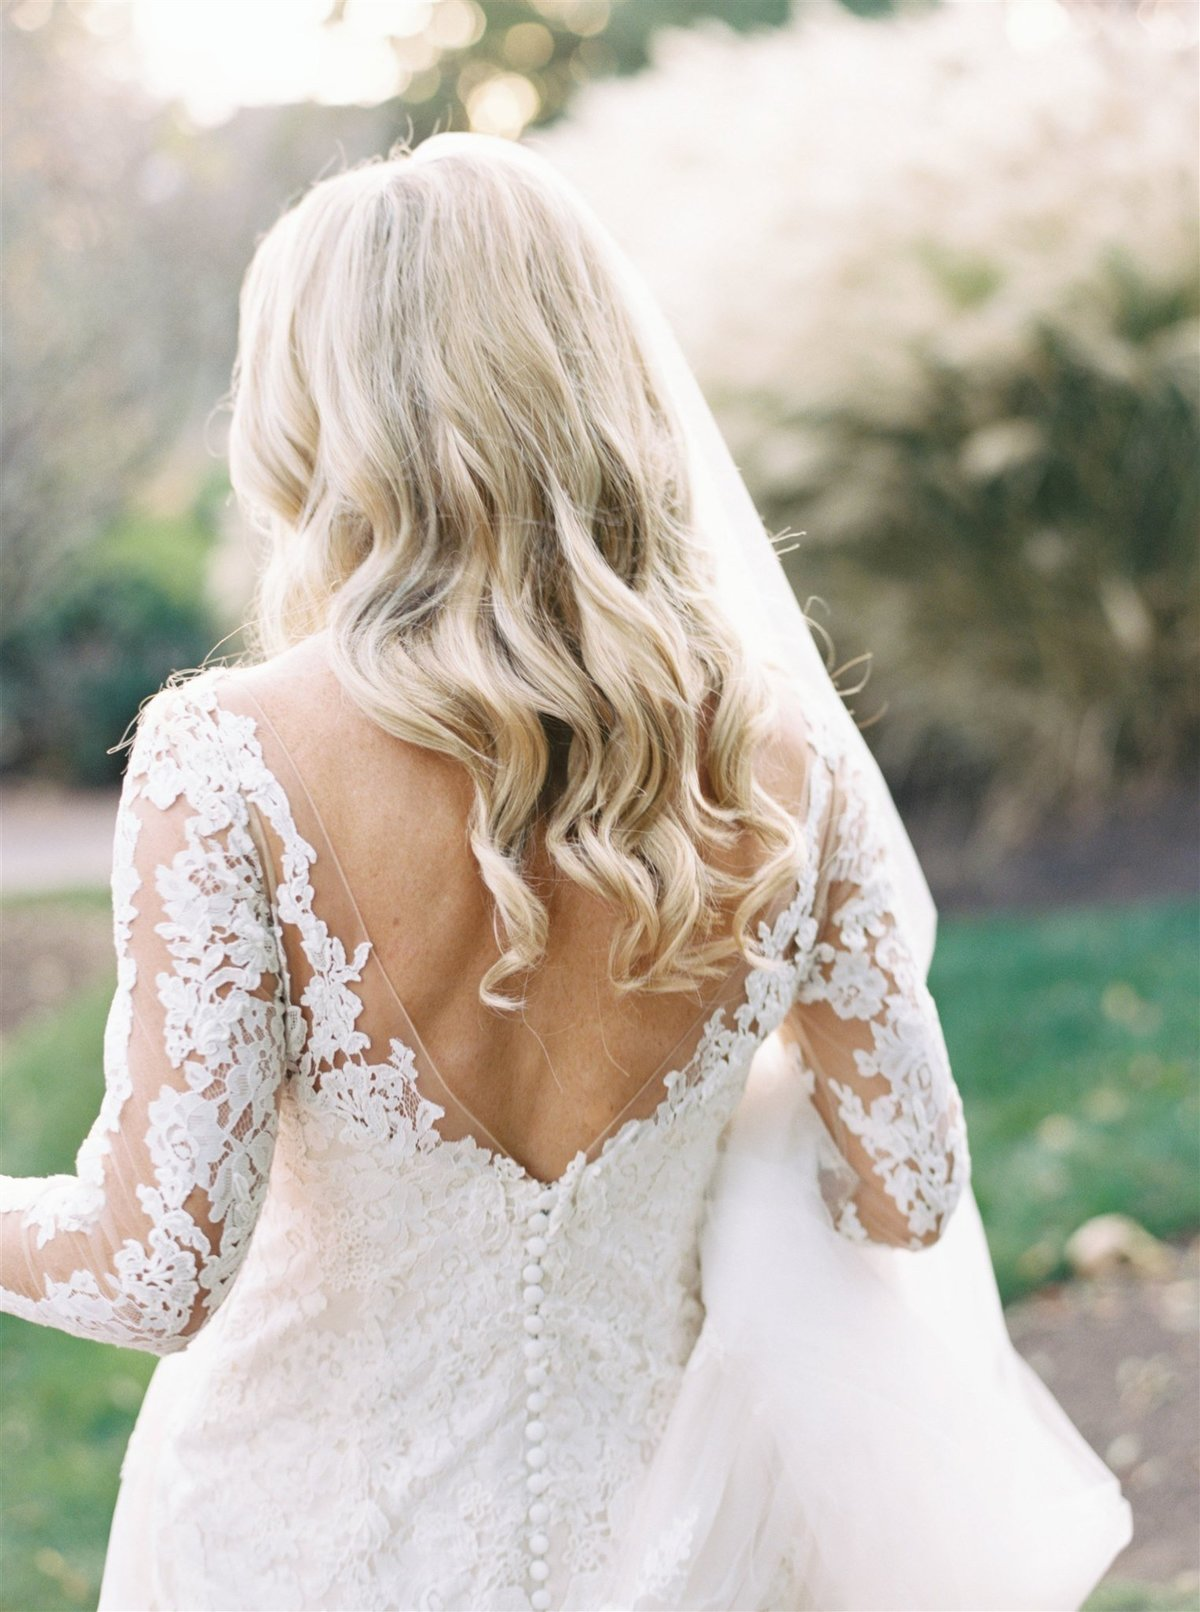 Soft wave bridal wedding day hairstyle - loose curls